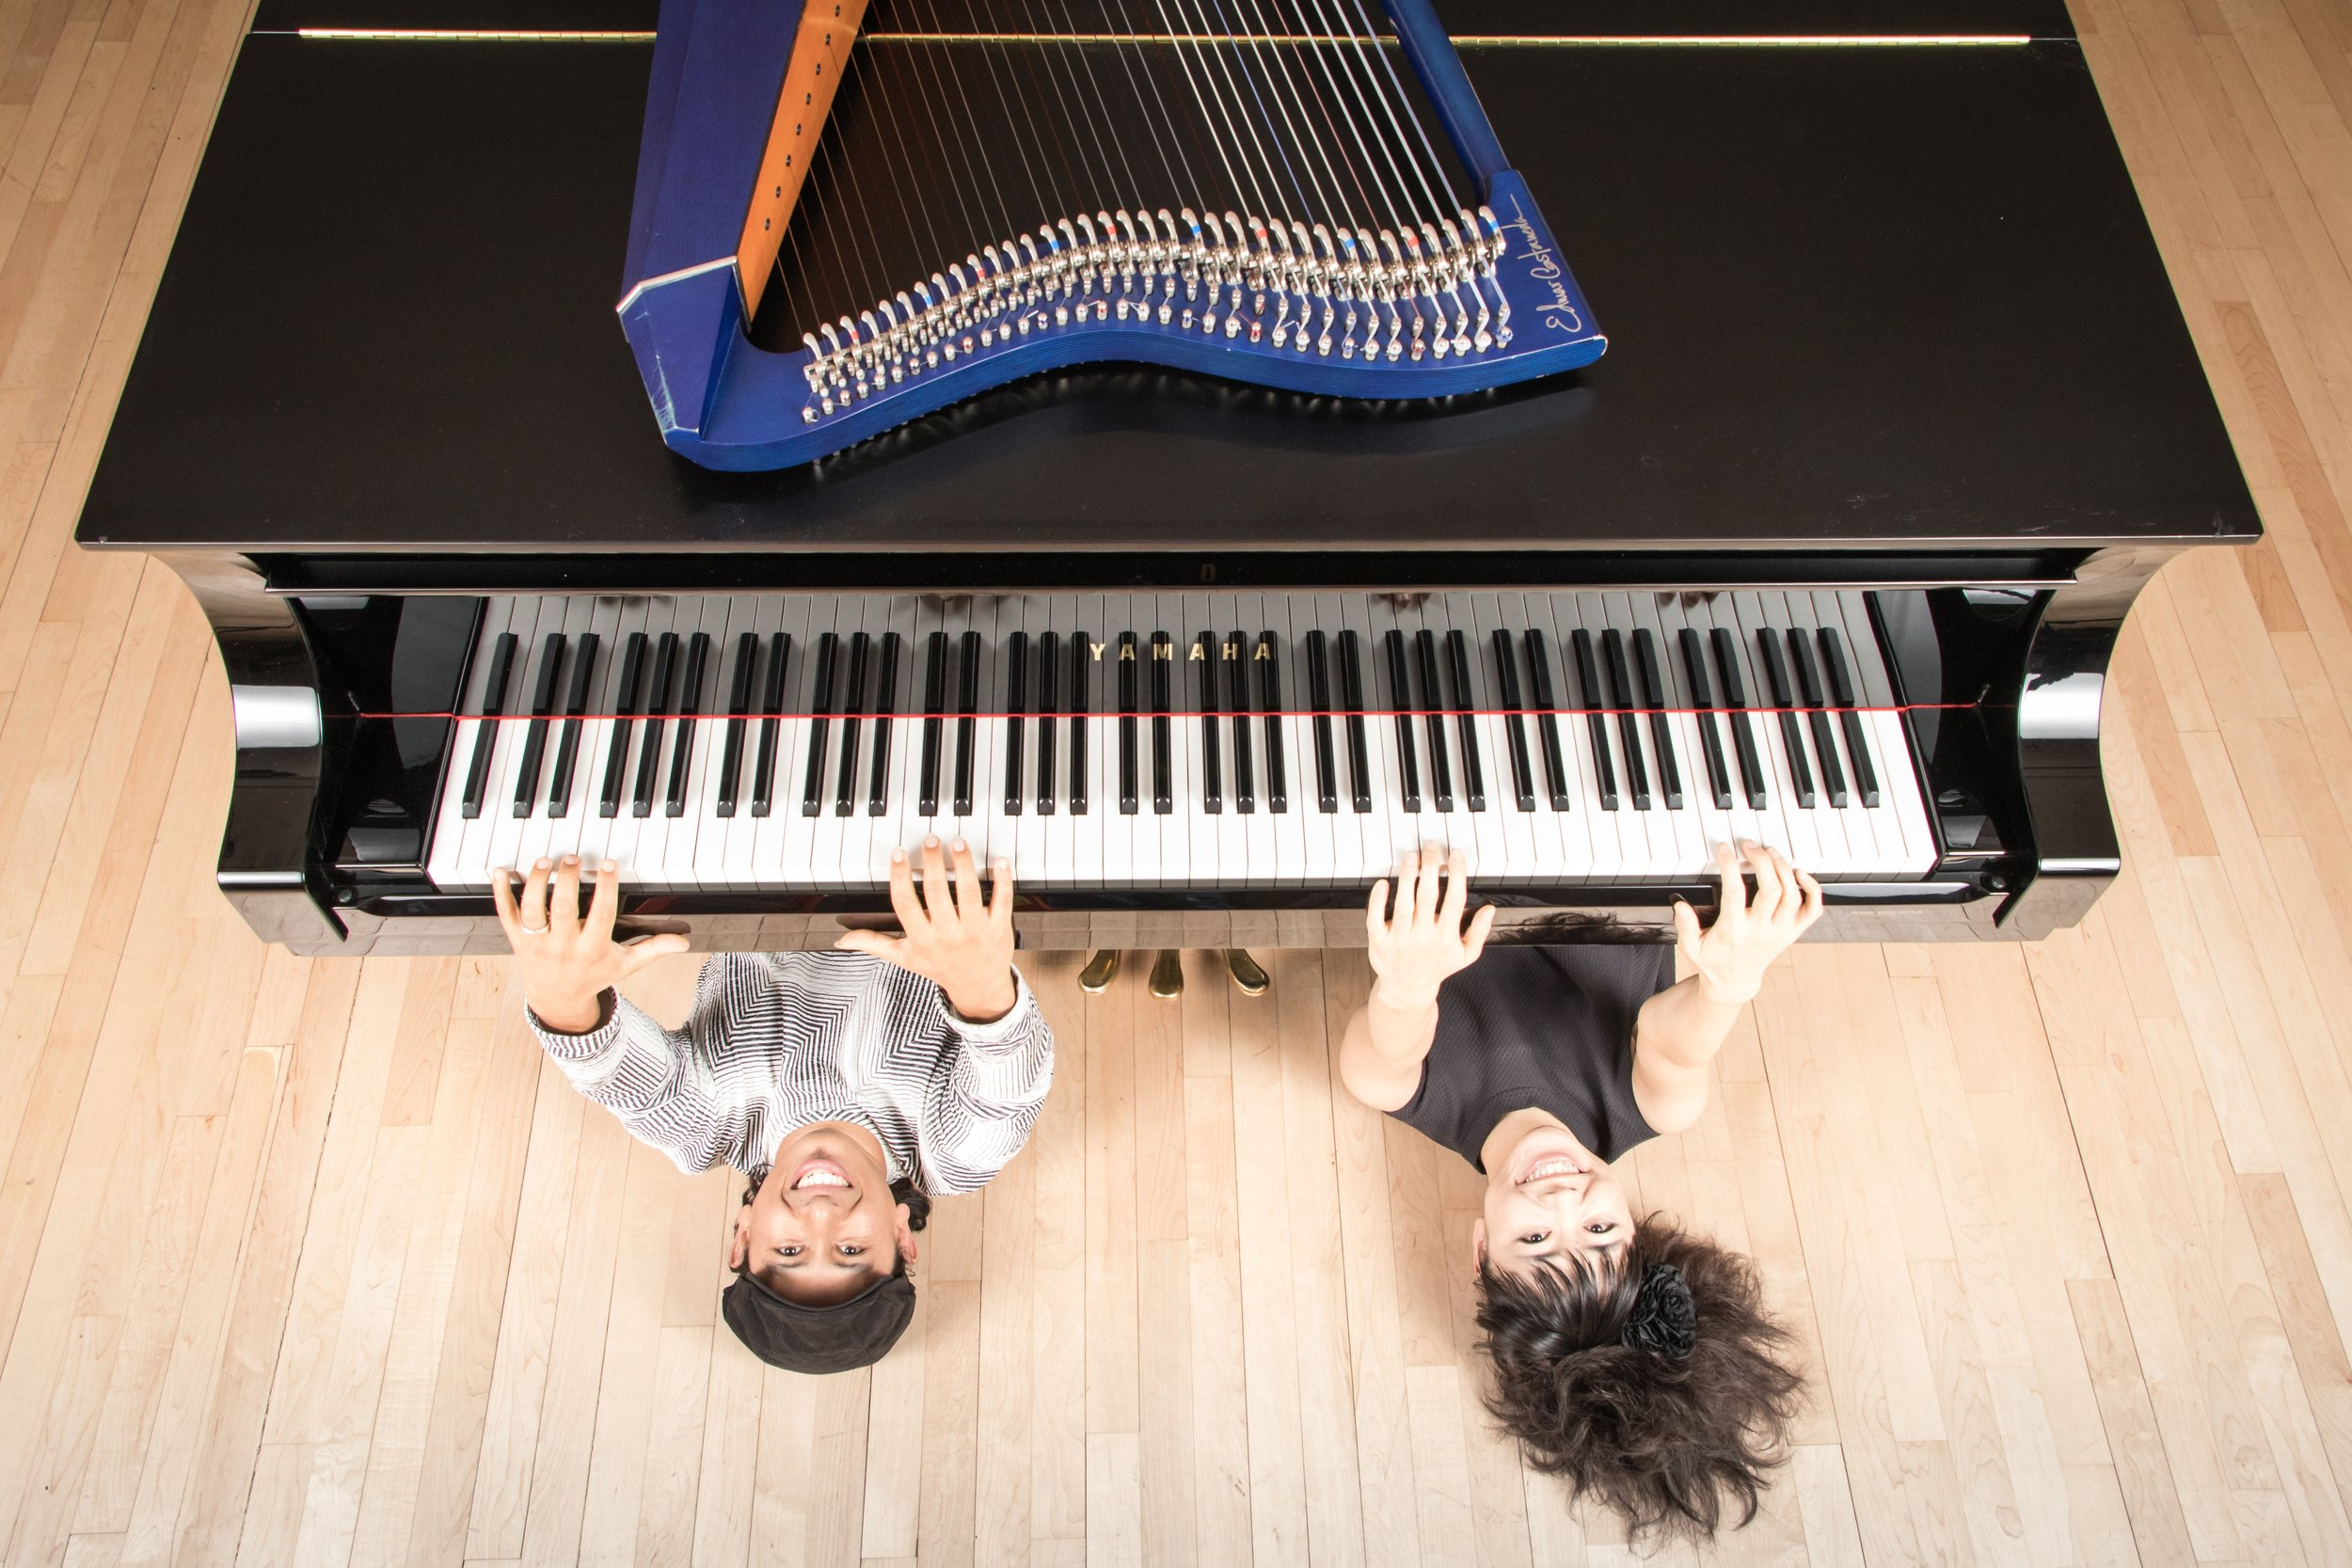 0116 Hiromi & Edmar Promo Publicity Portraits '17 ©2017 Juan Patino Photography Retouched Hi-Resolution Finals MON Jan 23 1st Deliv.jpg